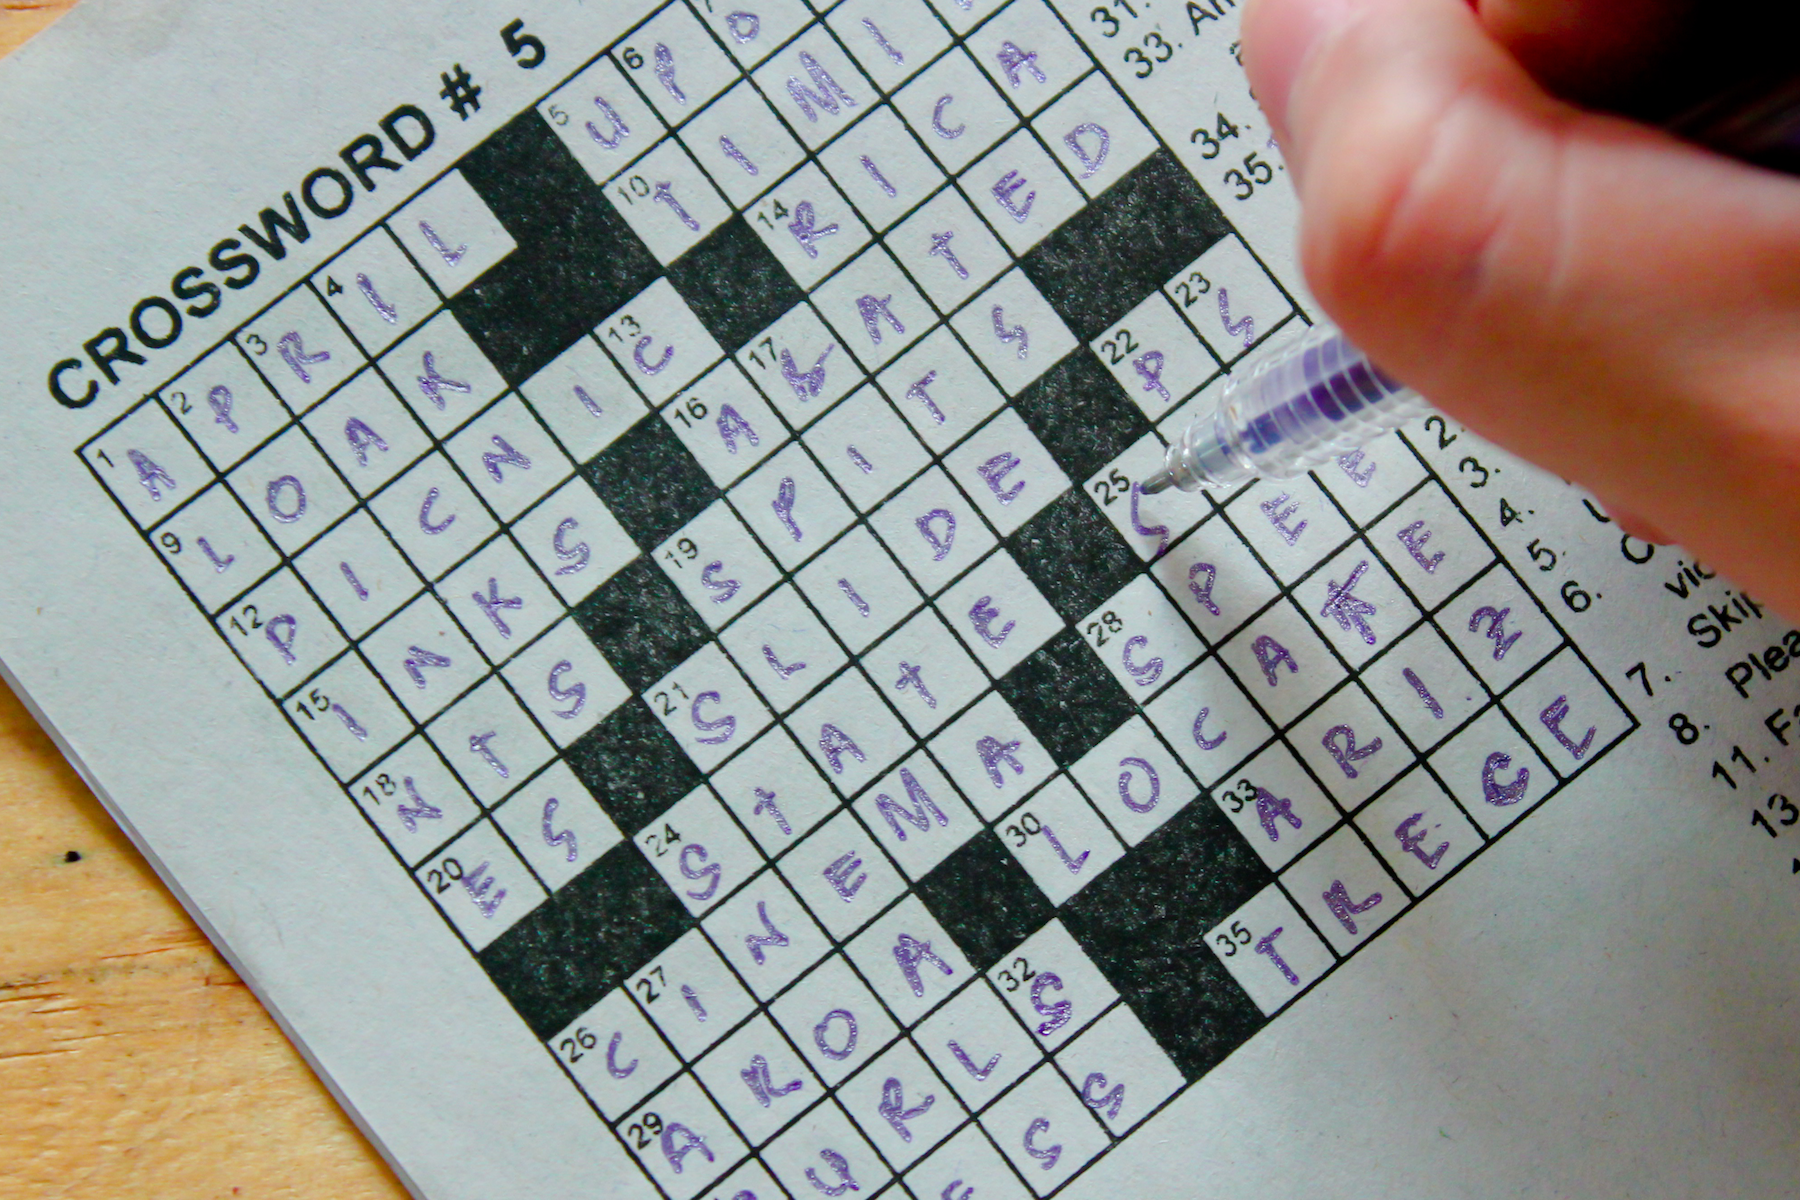 Tracing American Culture and Language Through NYT Crossword Puzzles